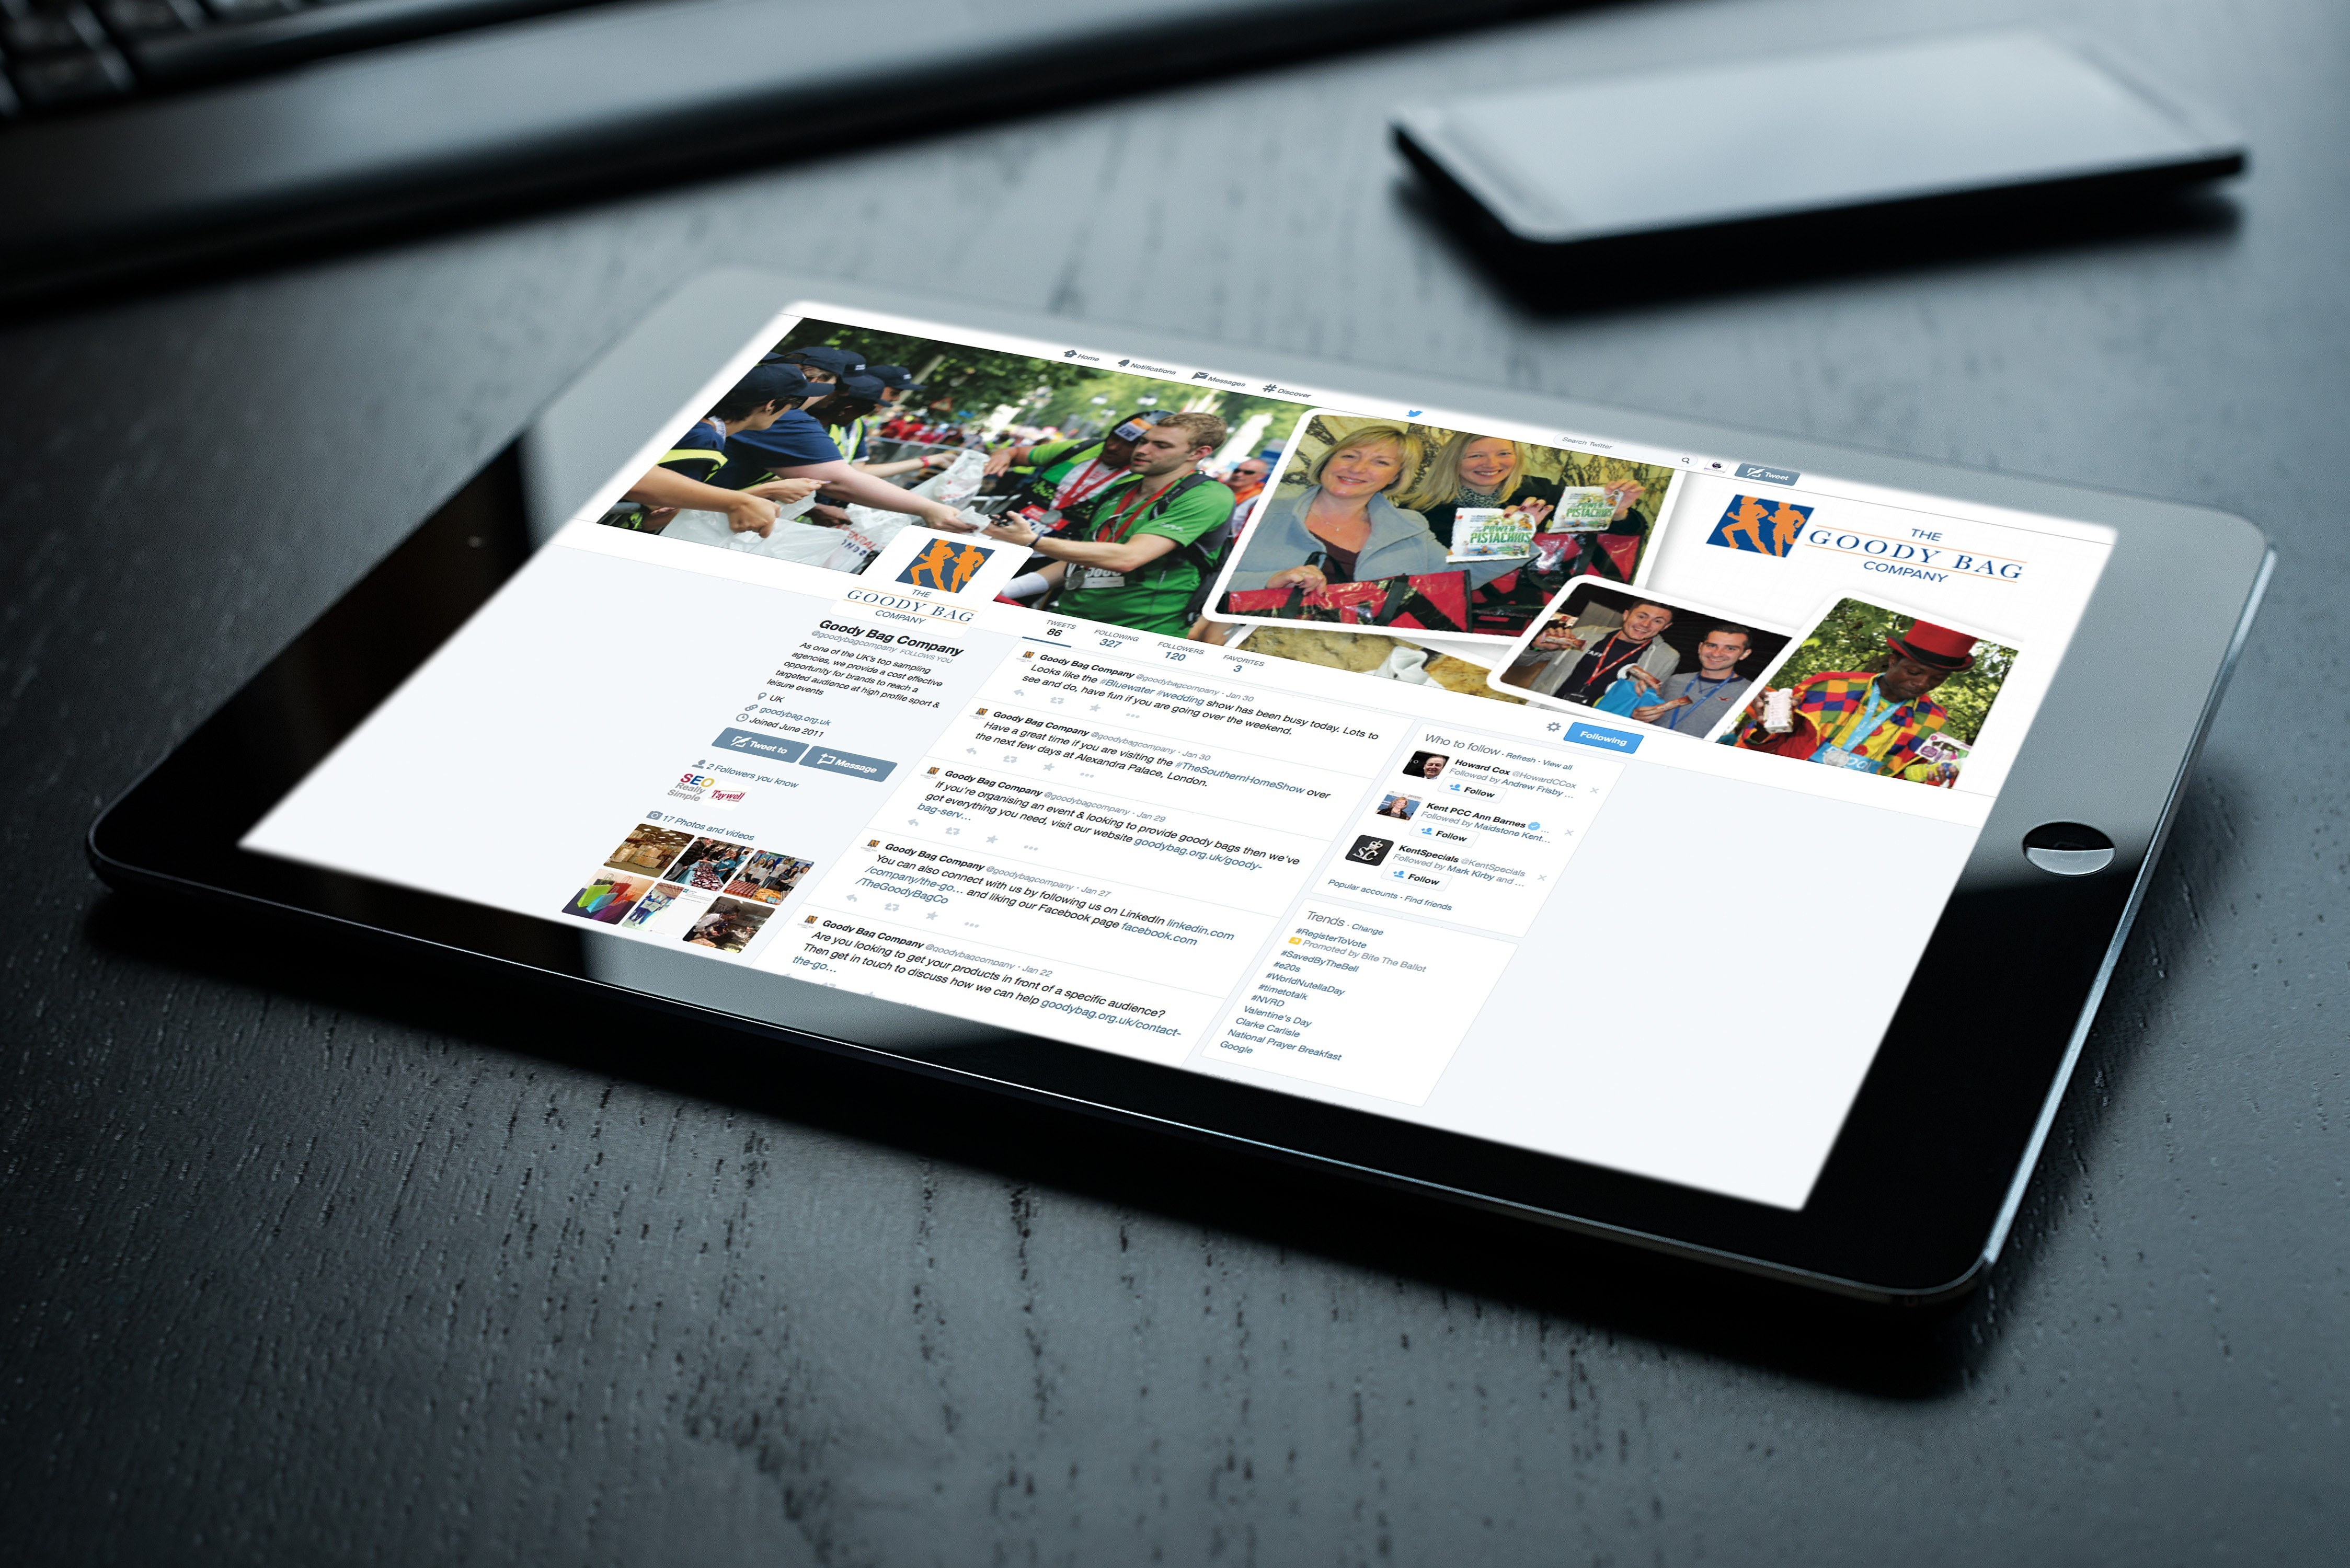 An image showing a tablet computer (iPad) sitting on a desk with the Goodybag Twitter page showing on it.